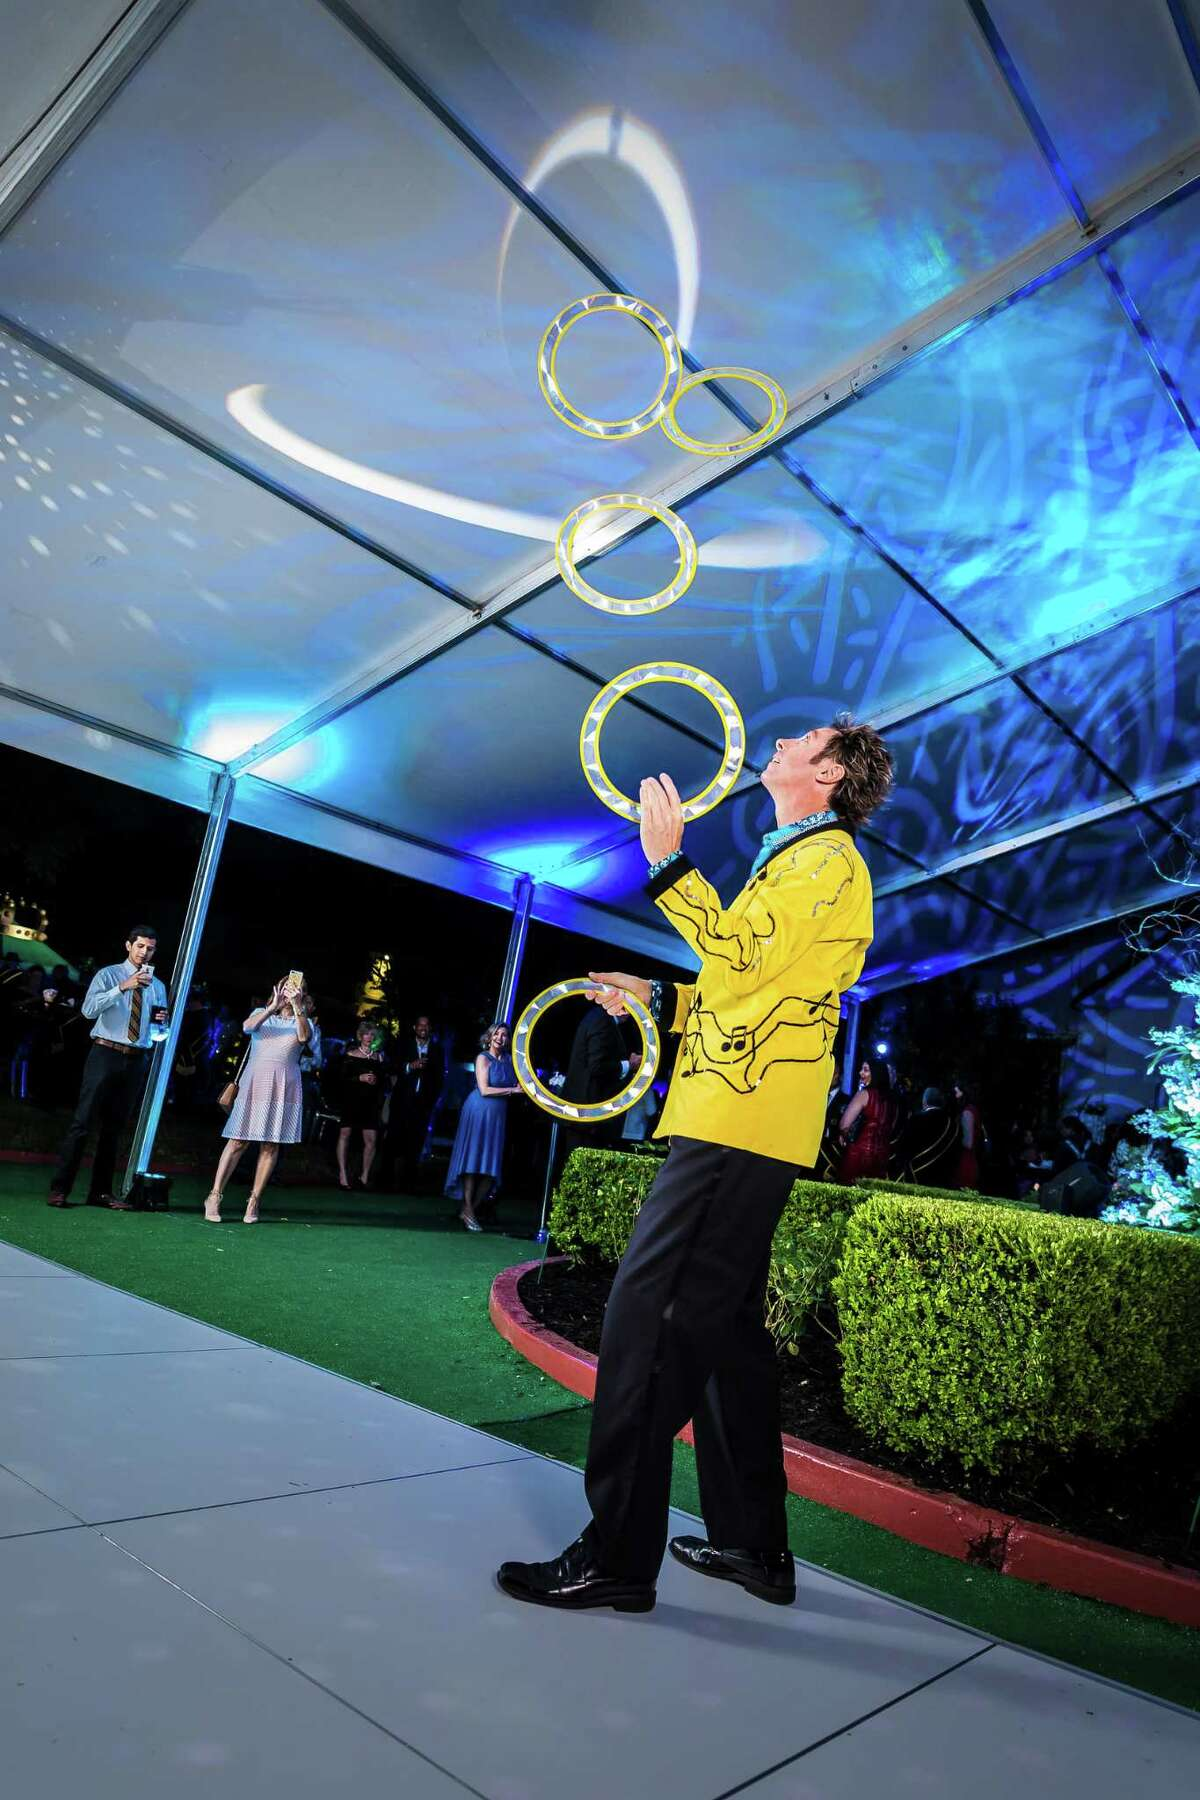 According to Sara Walker Private Events, clients with high-end parties crave specialty entertainment, such as jugglers, stilt walkers and magicians.